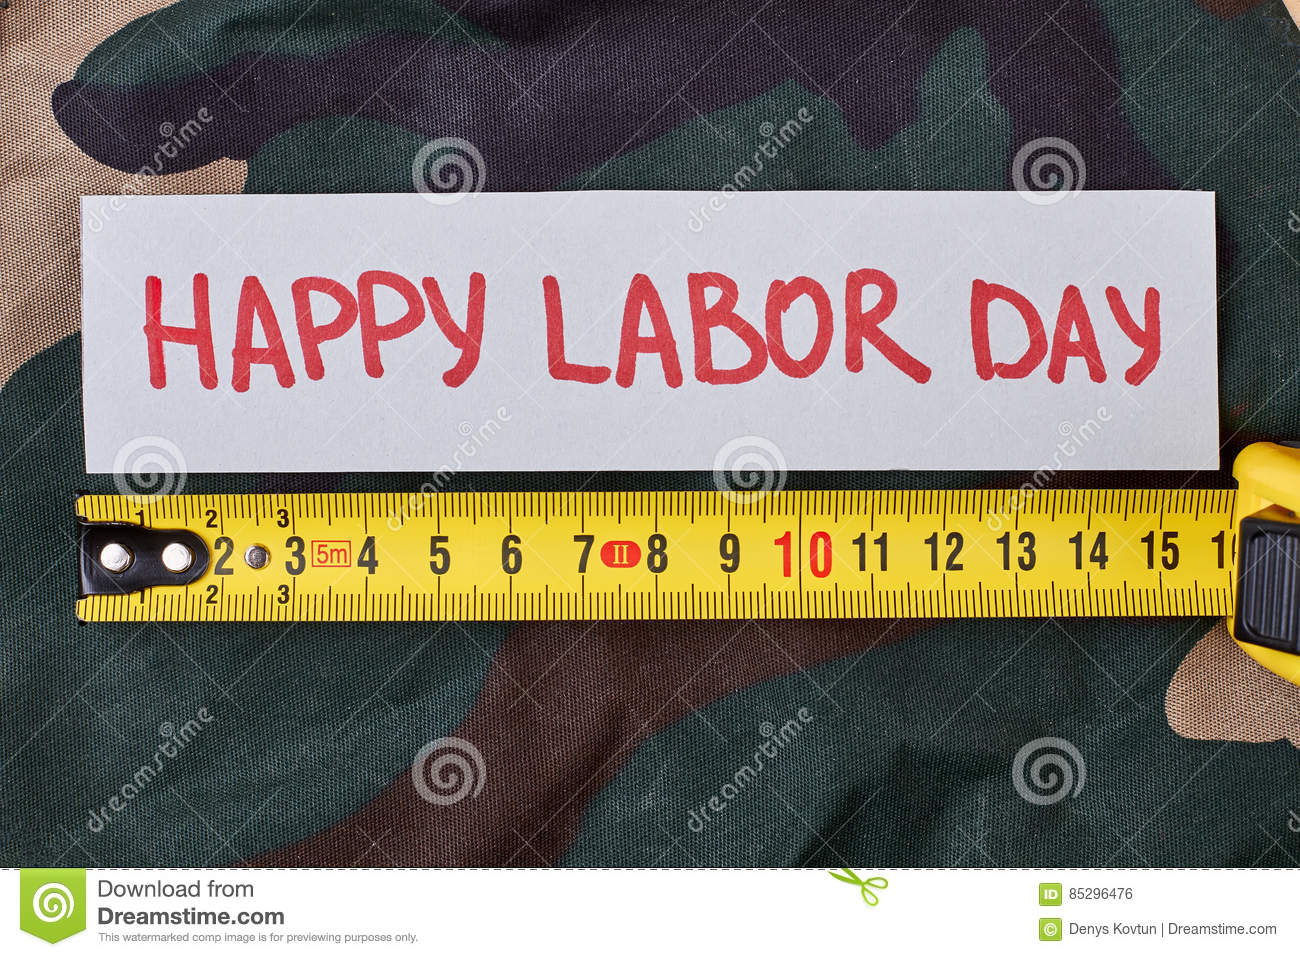 Labour Day card on camouflage.